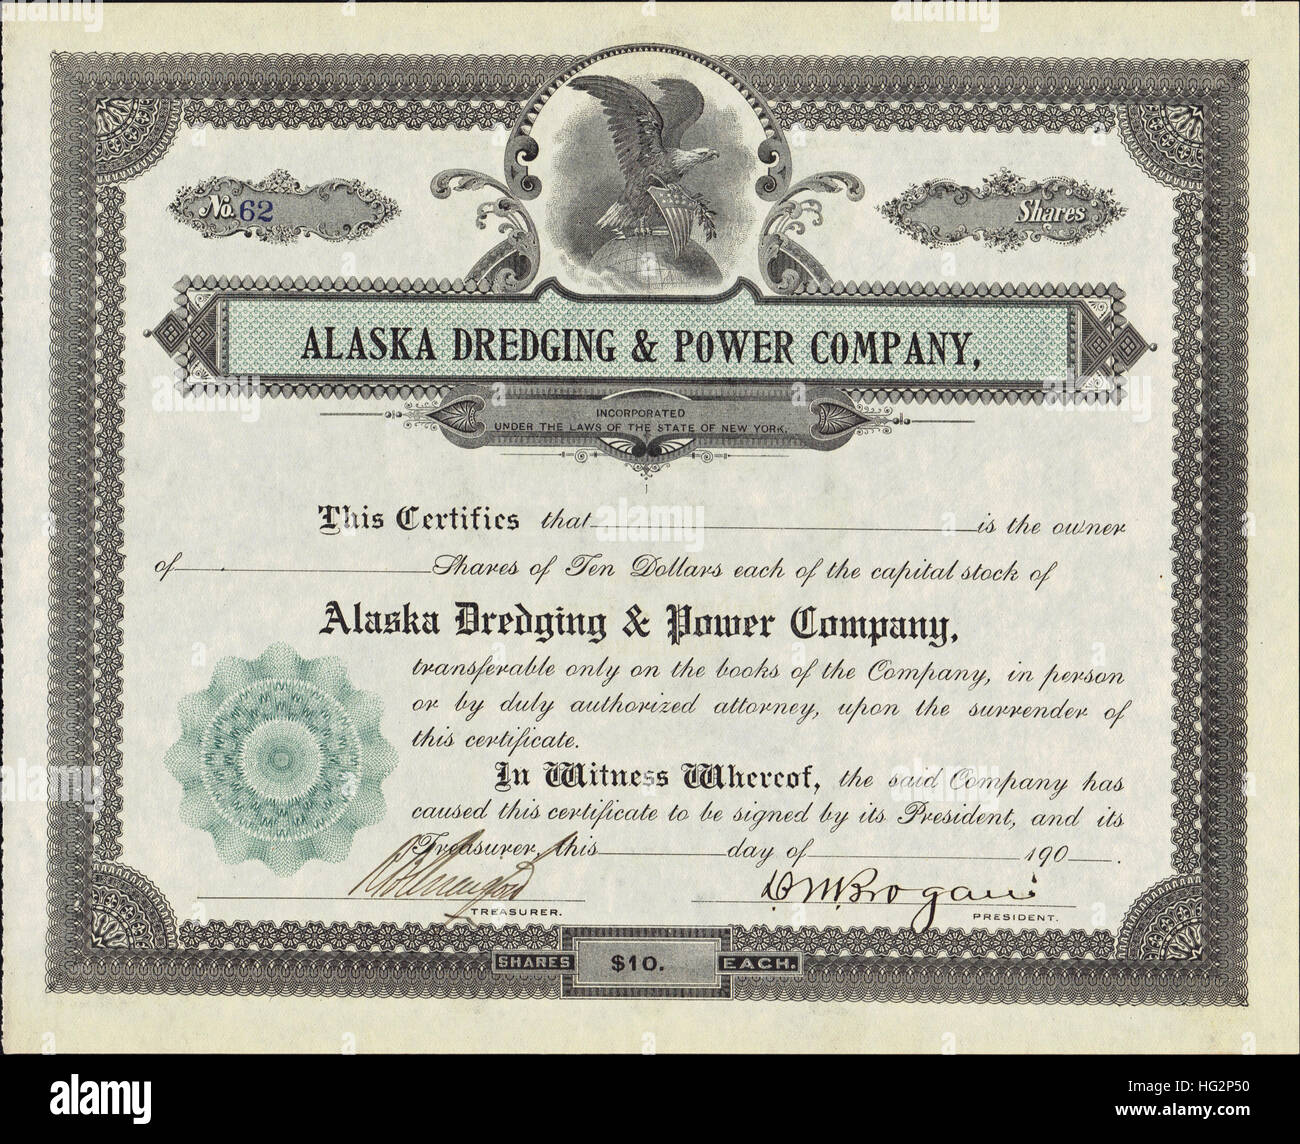 Company shares stock photos company shares stock images alamy early 1900s alaska dredging and power company stock certificate usa stock image xflitez Gallery